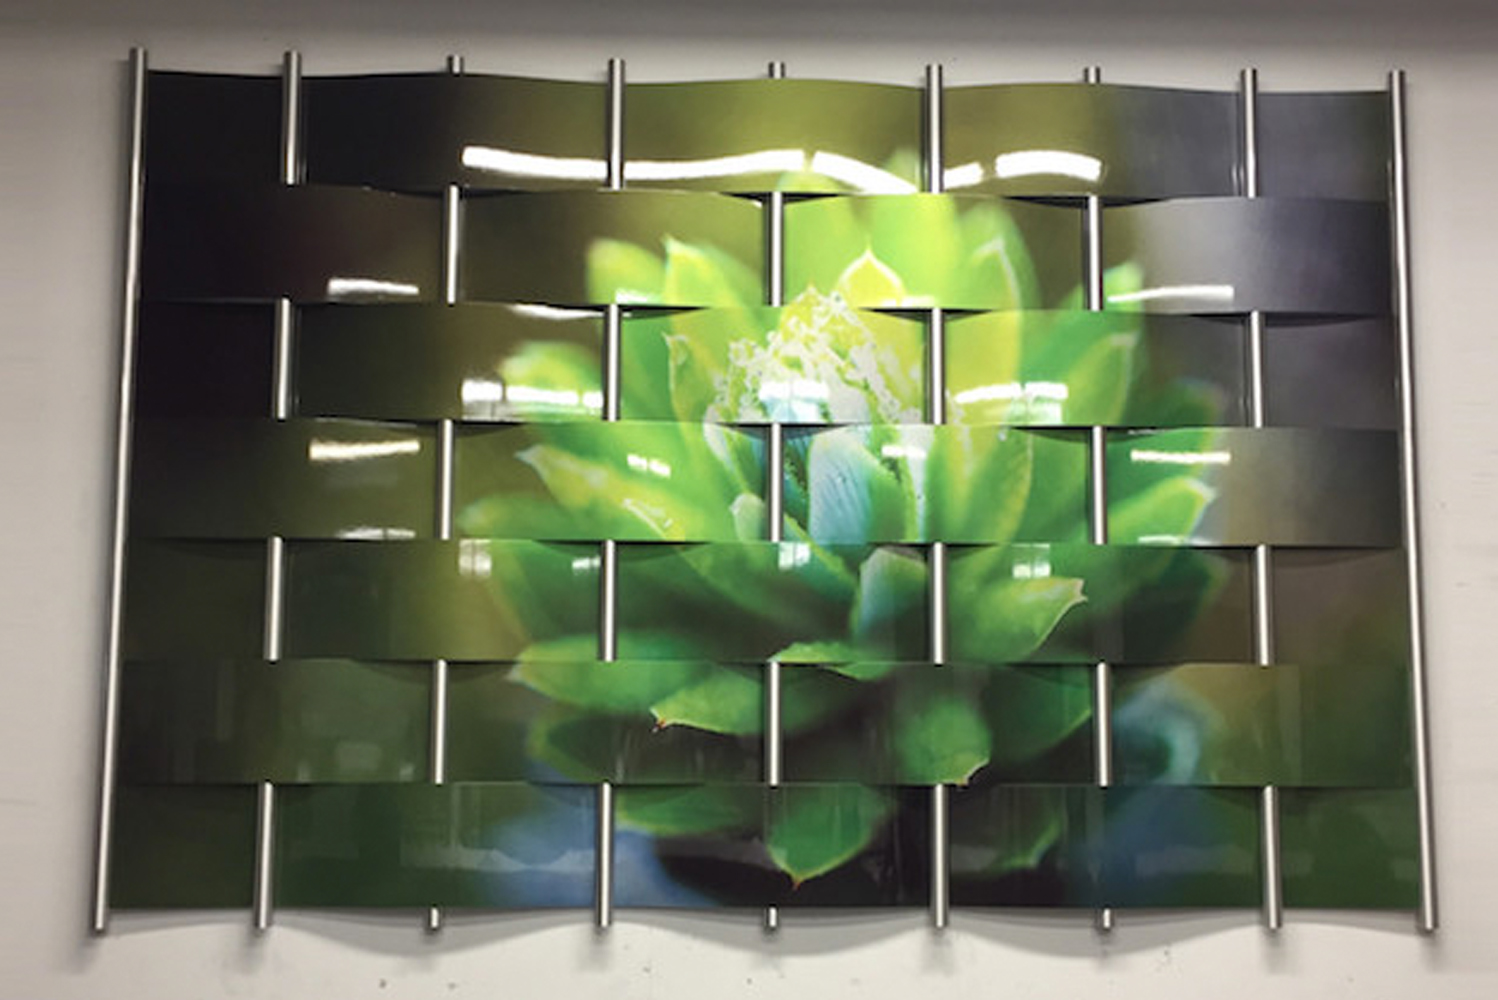 Named Digital Imagery, the new option uses high-res imagery supplied by customers that Móz Designs then applies to metal to create a custom multi-layered piece of wall art.